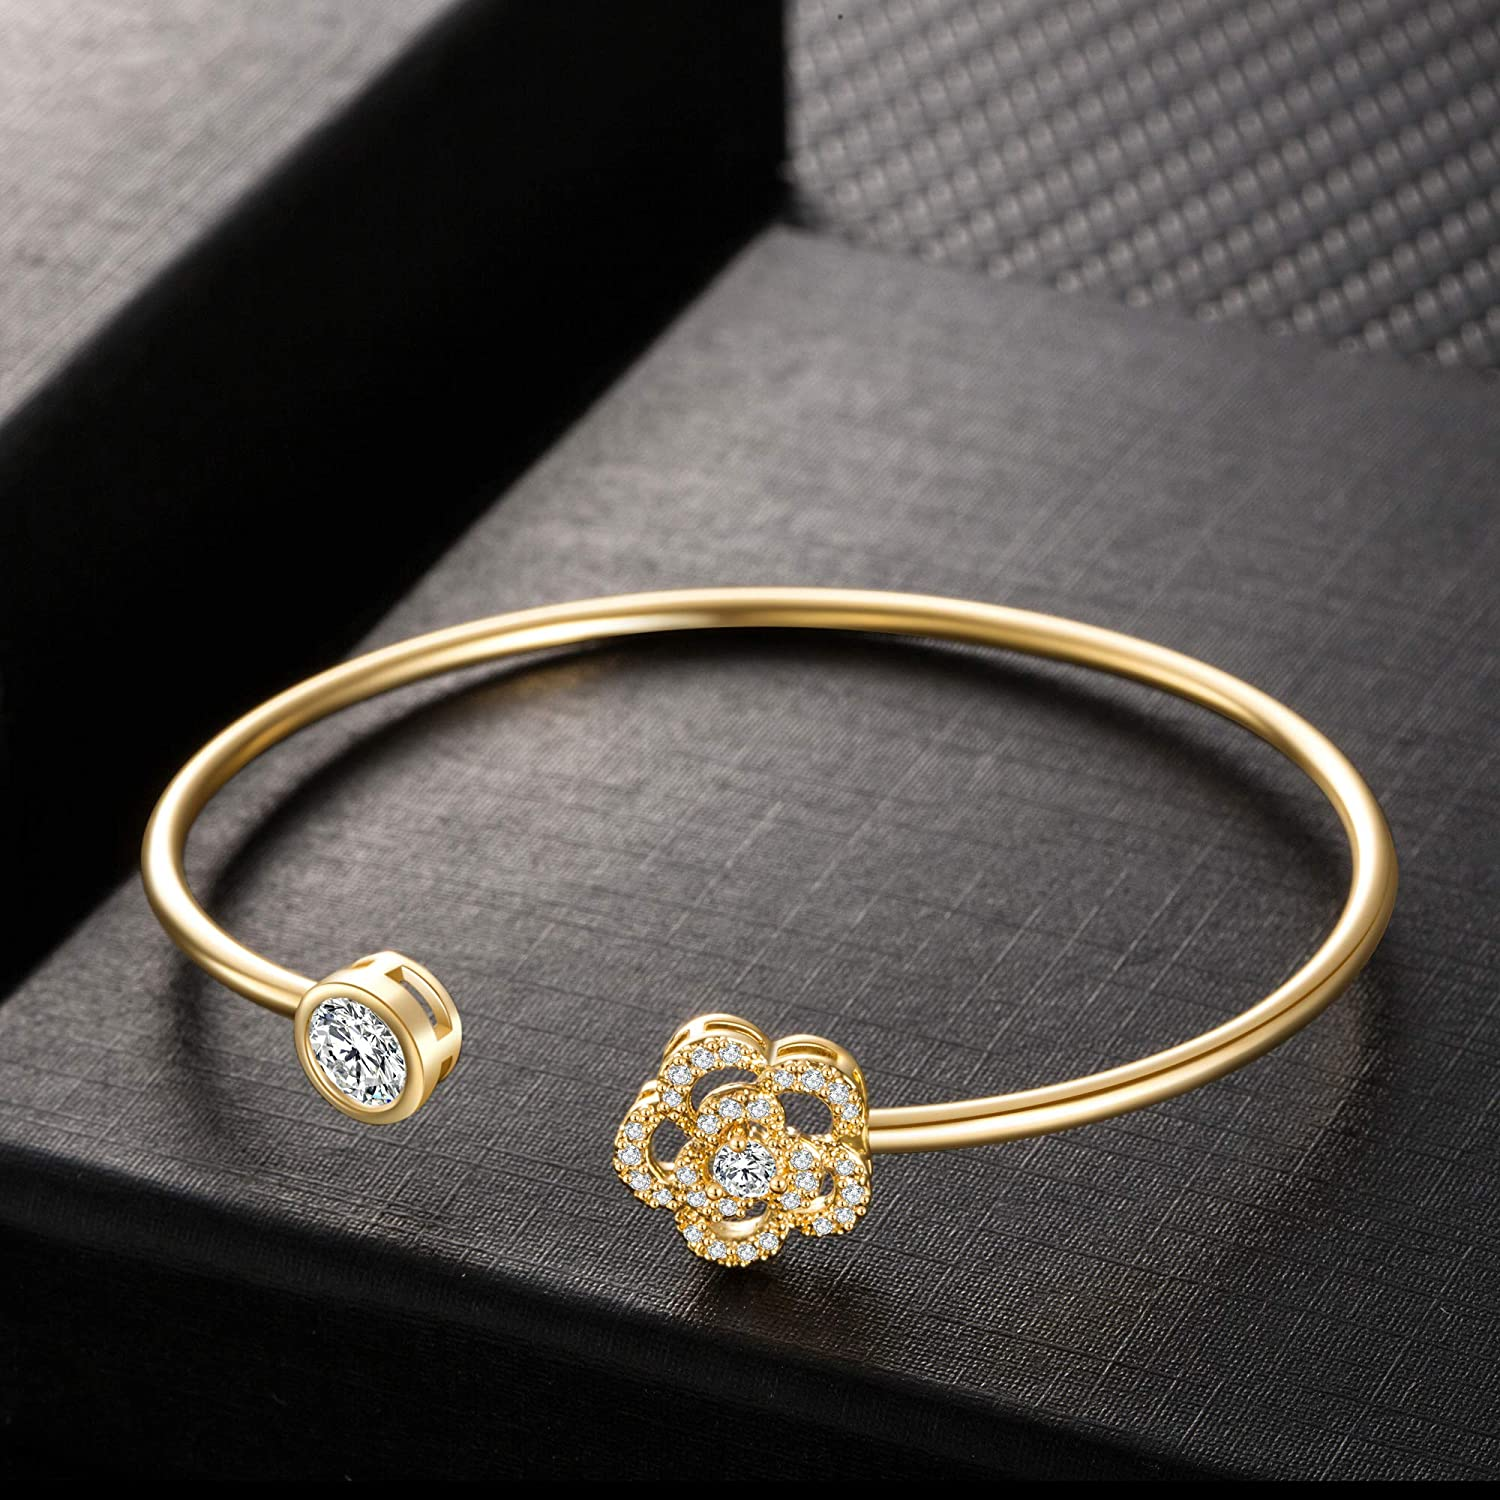 Buyless Fashion Girls Flower Bangle Bracelet Jewelry with White Stones